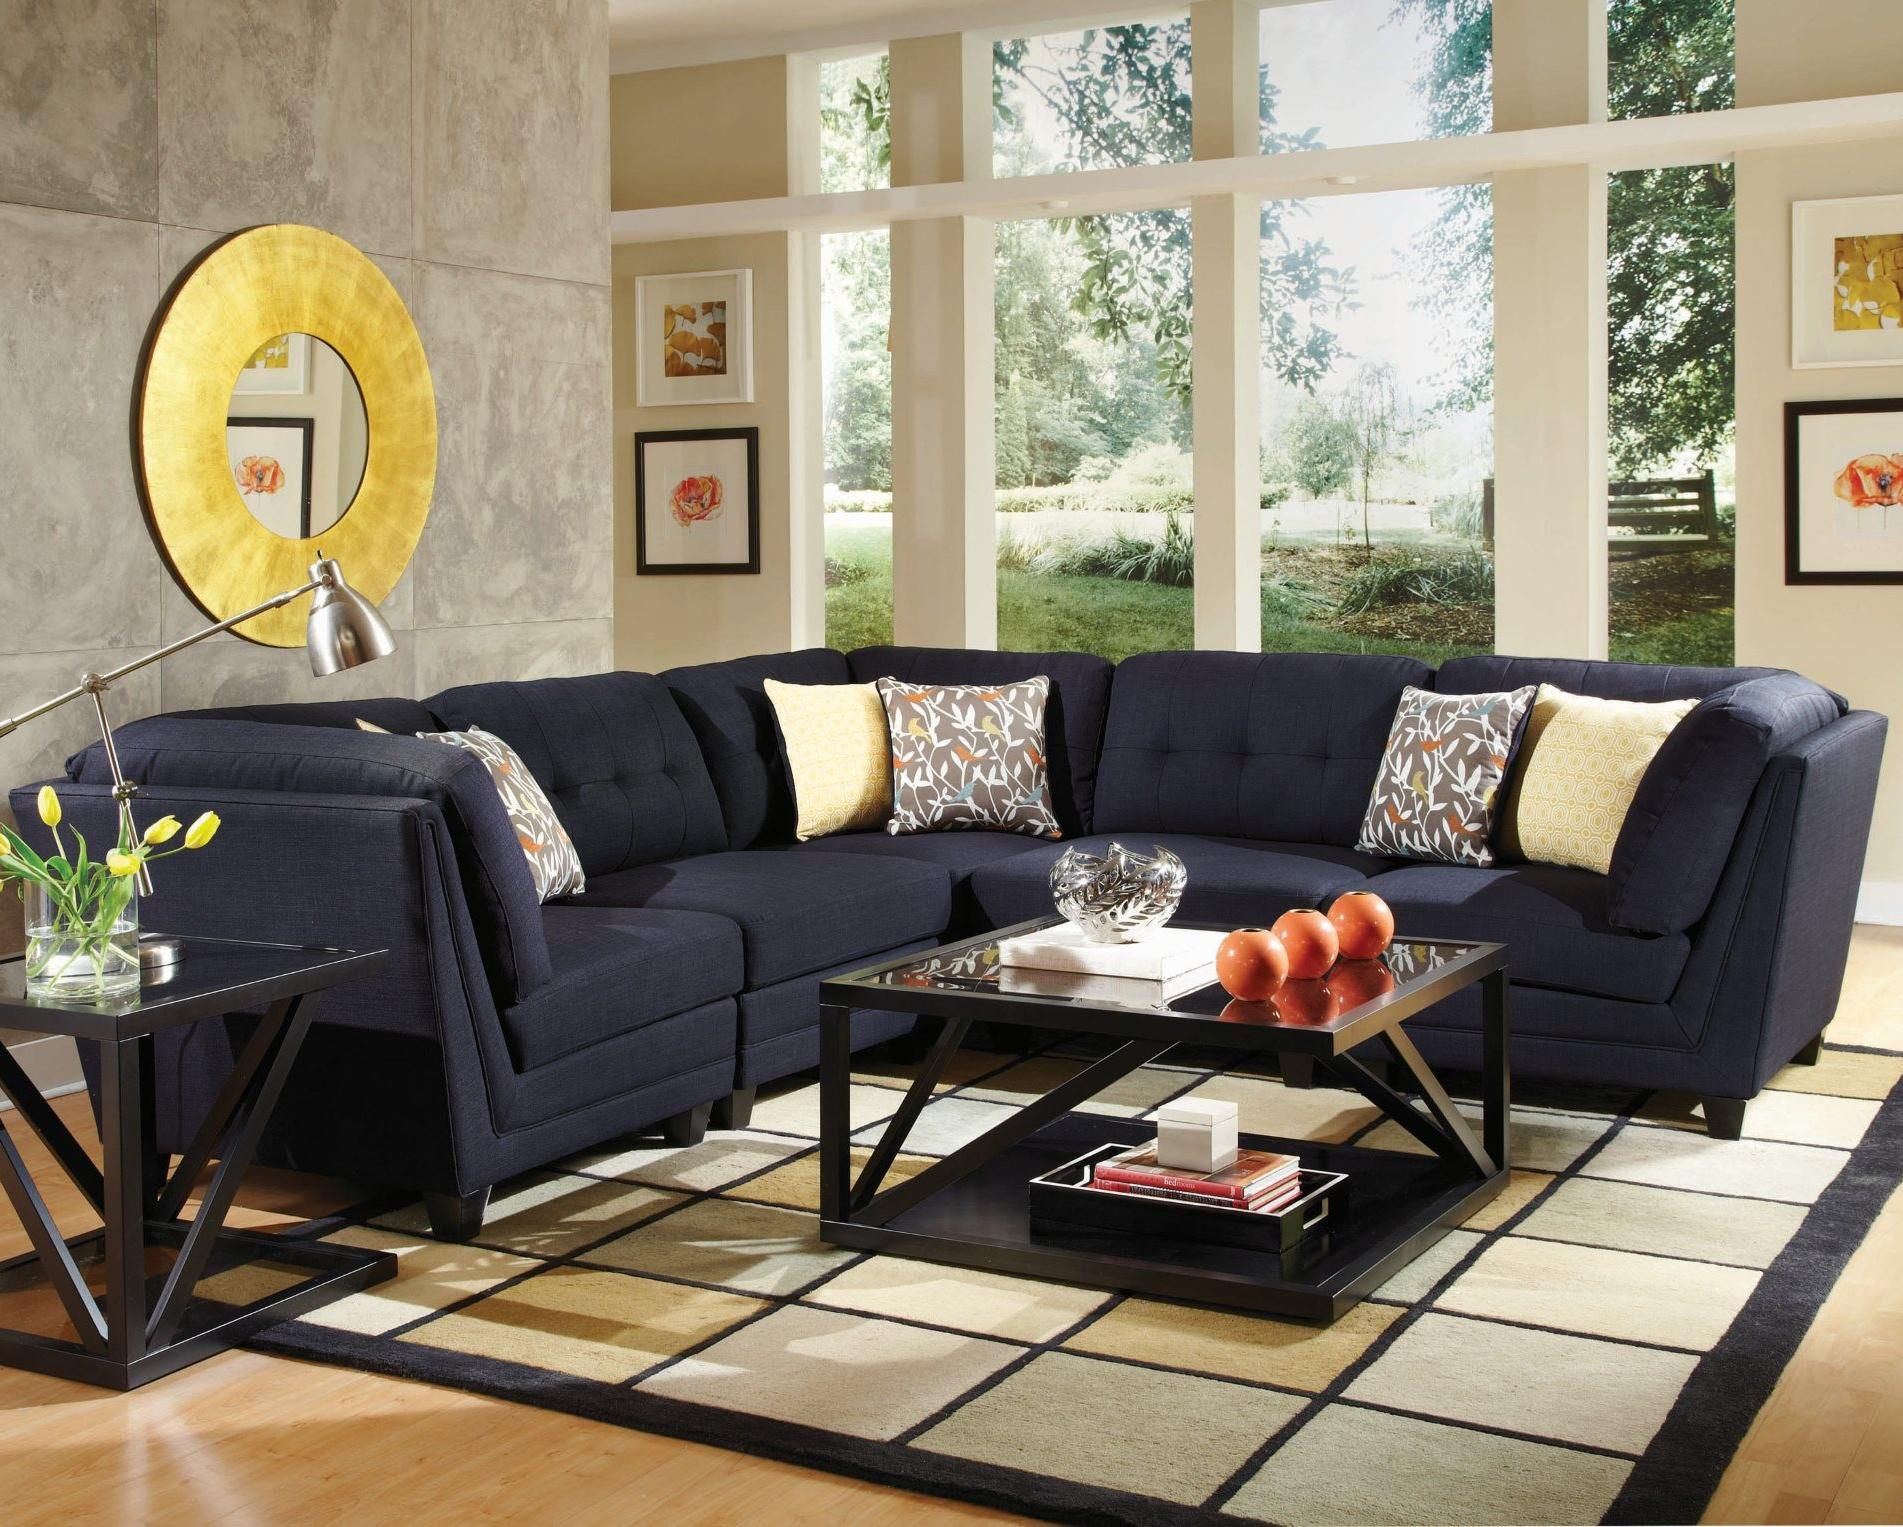 Keaton Transitional Five Piece Sectional Sofa with Tufting by